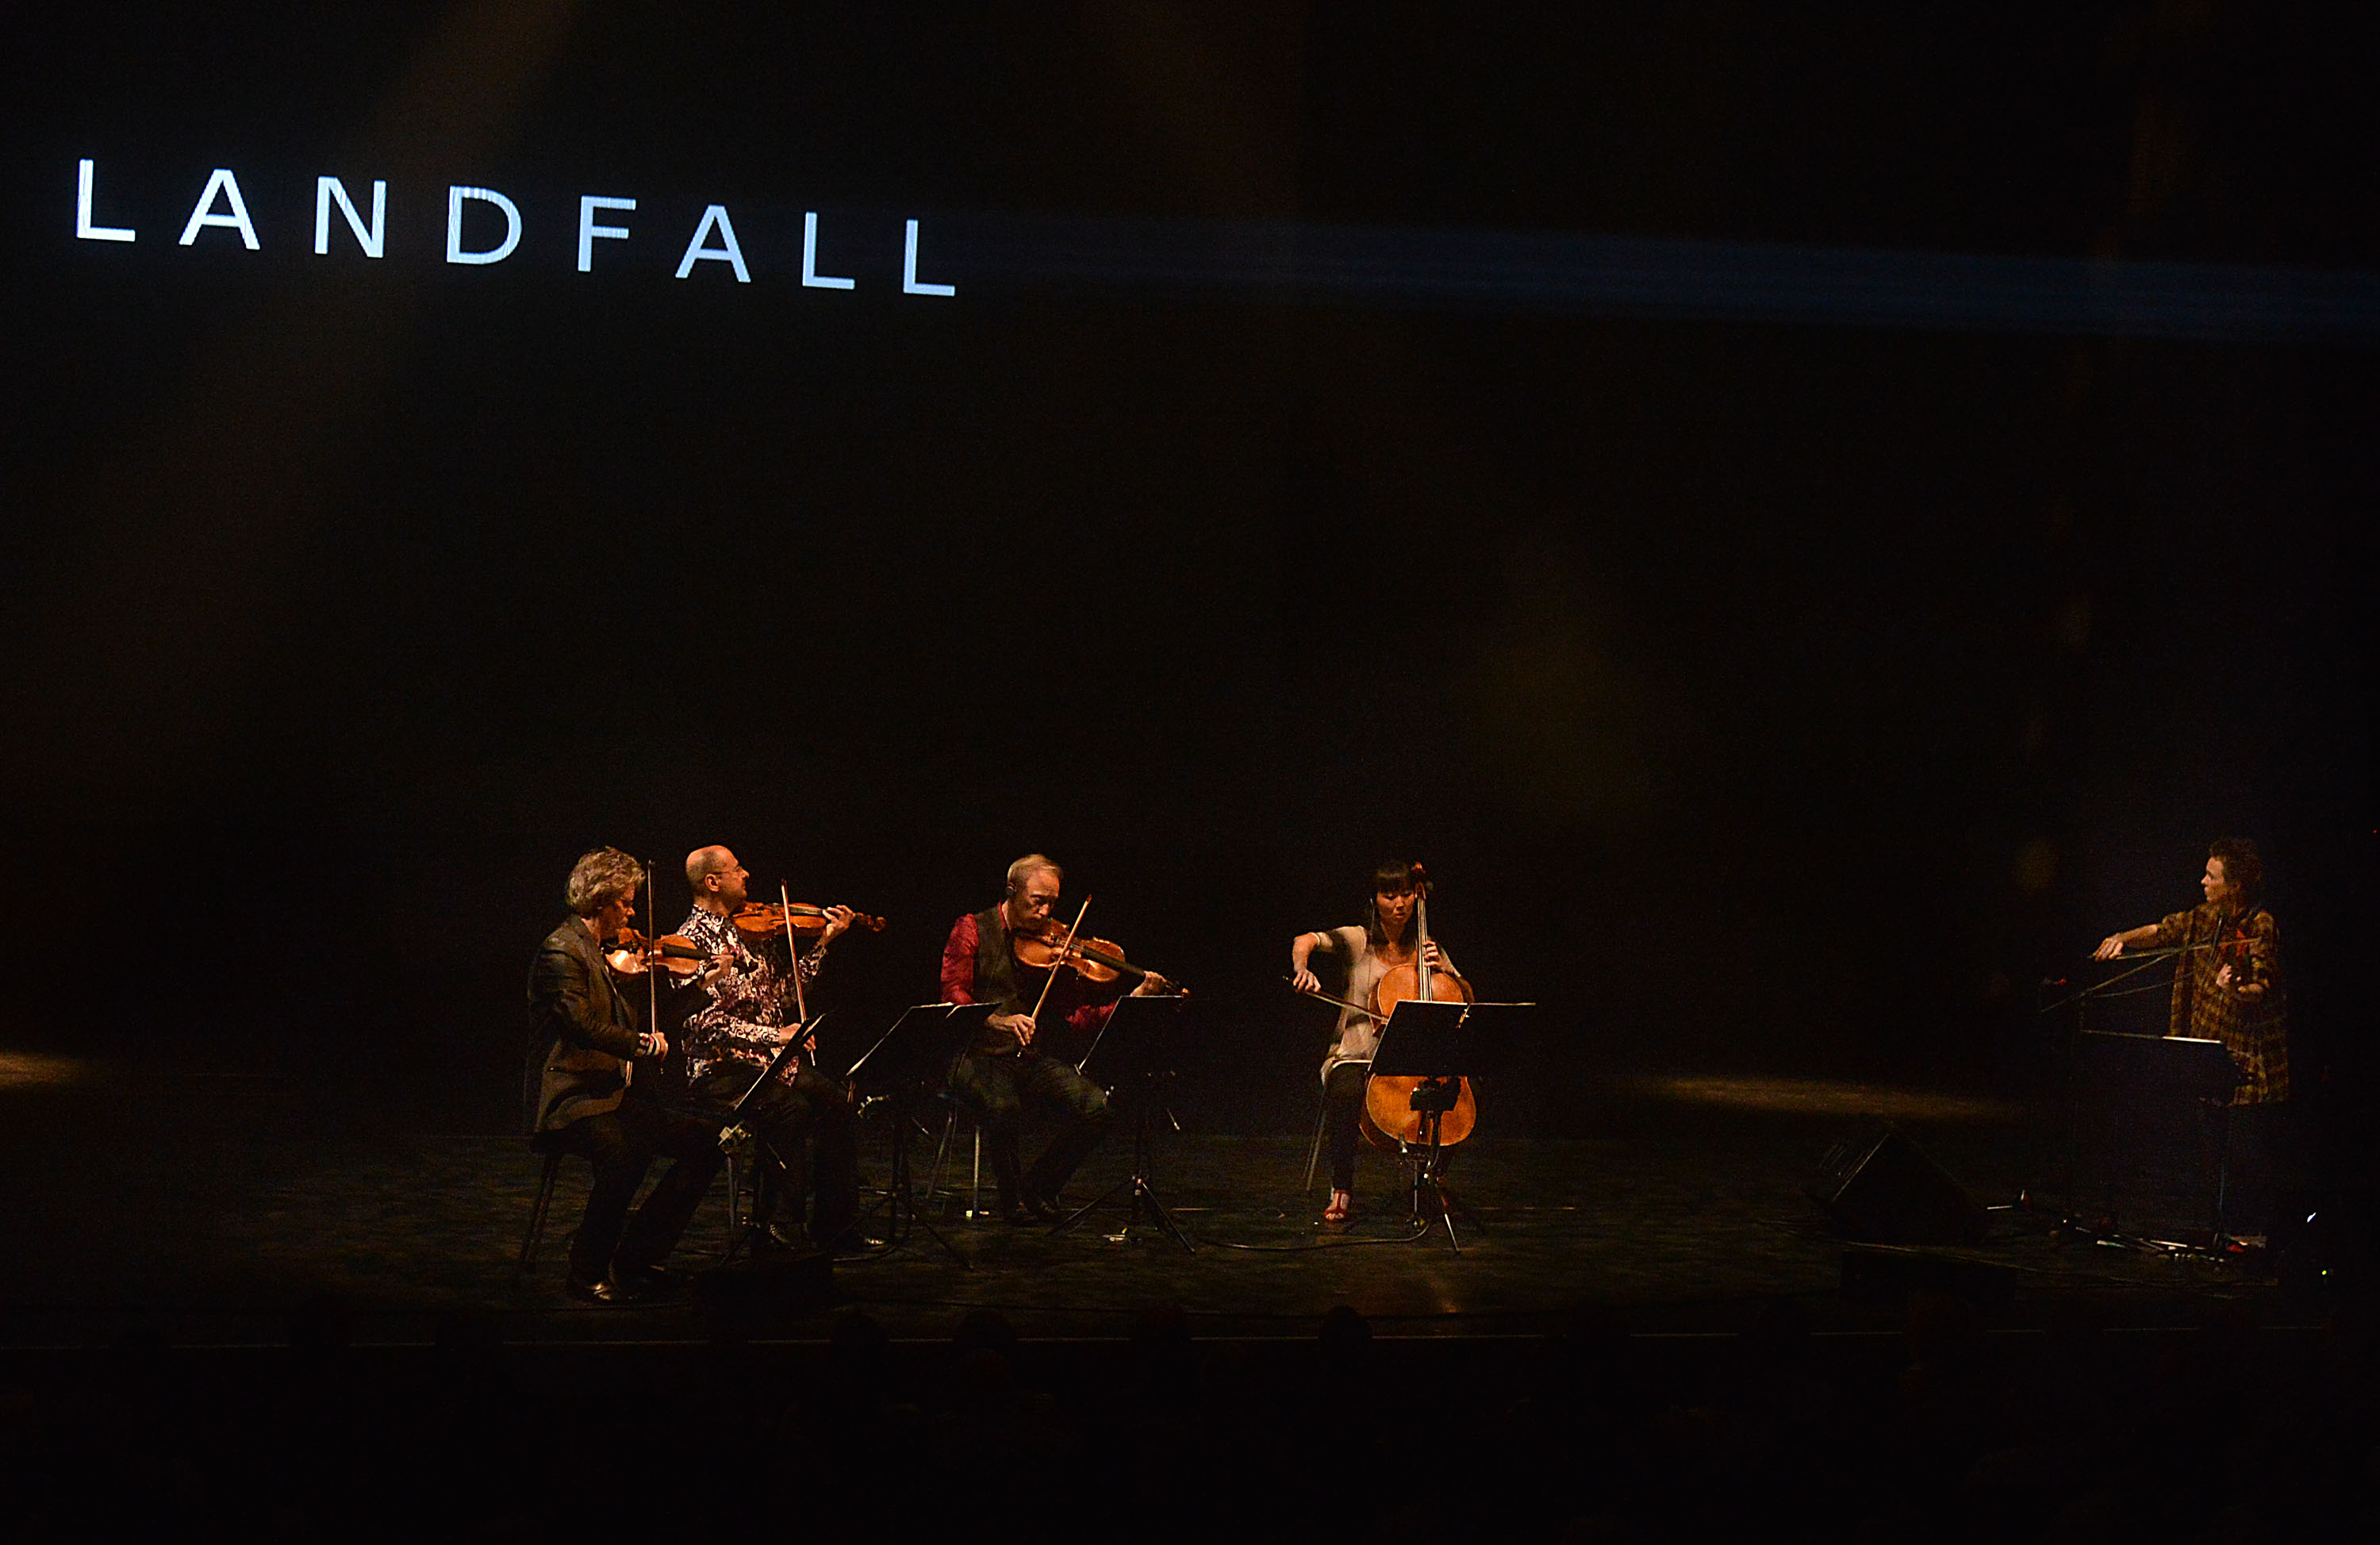 landfall performance